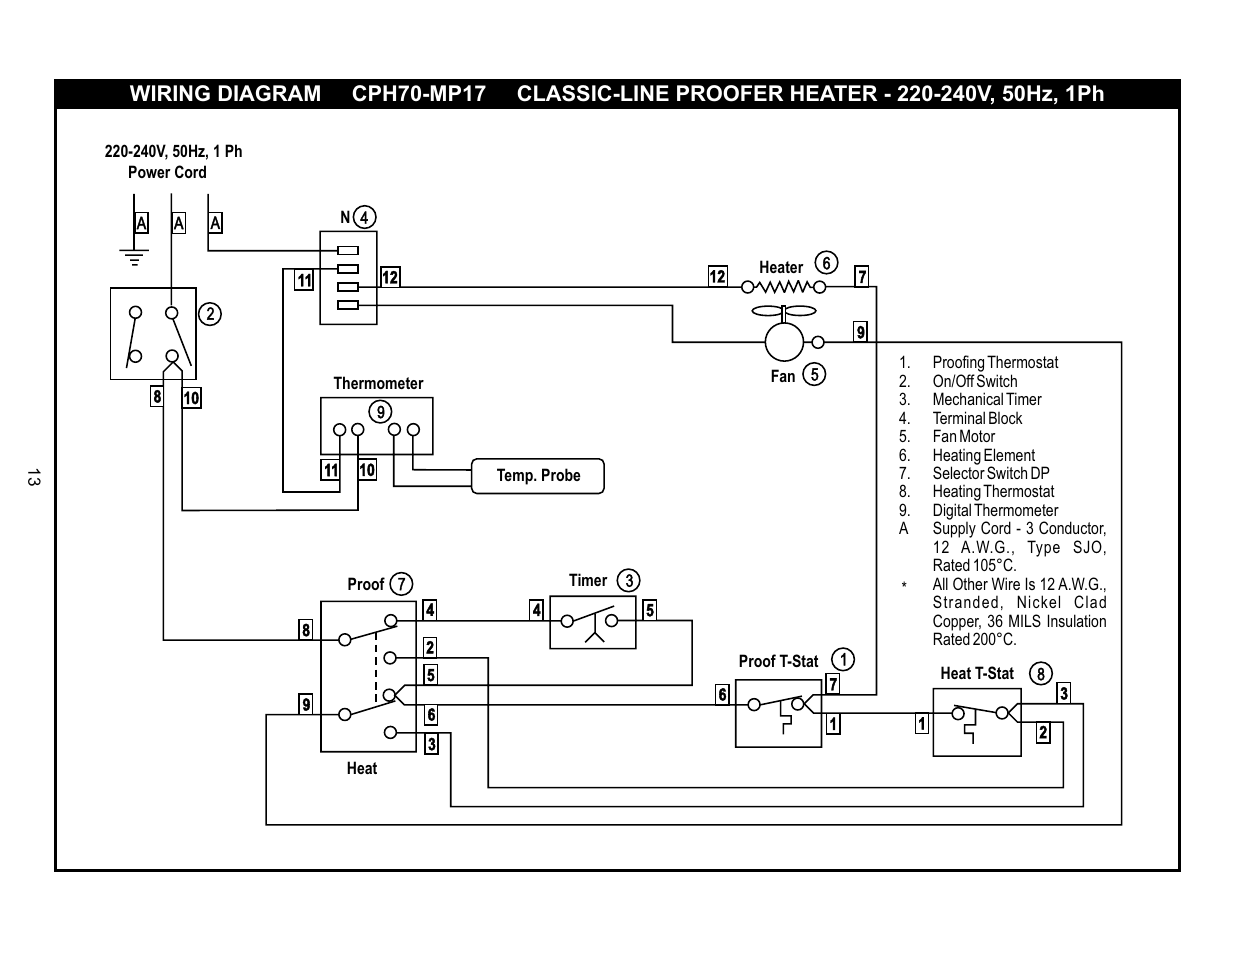 Bakers Pride Classic Line Proofer Heater Cph70 Mp17 User Manual Rotary Switch Wiring Diagram Page 13 16